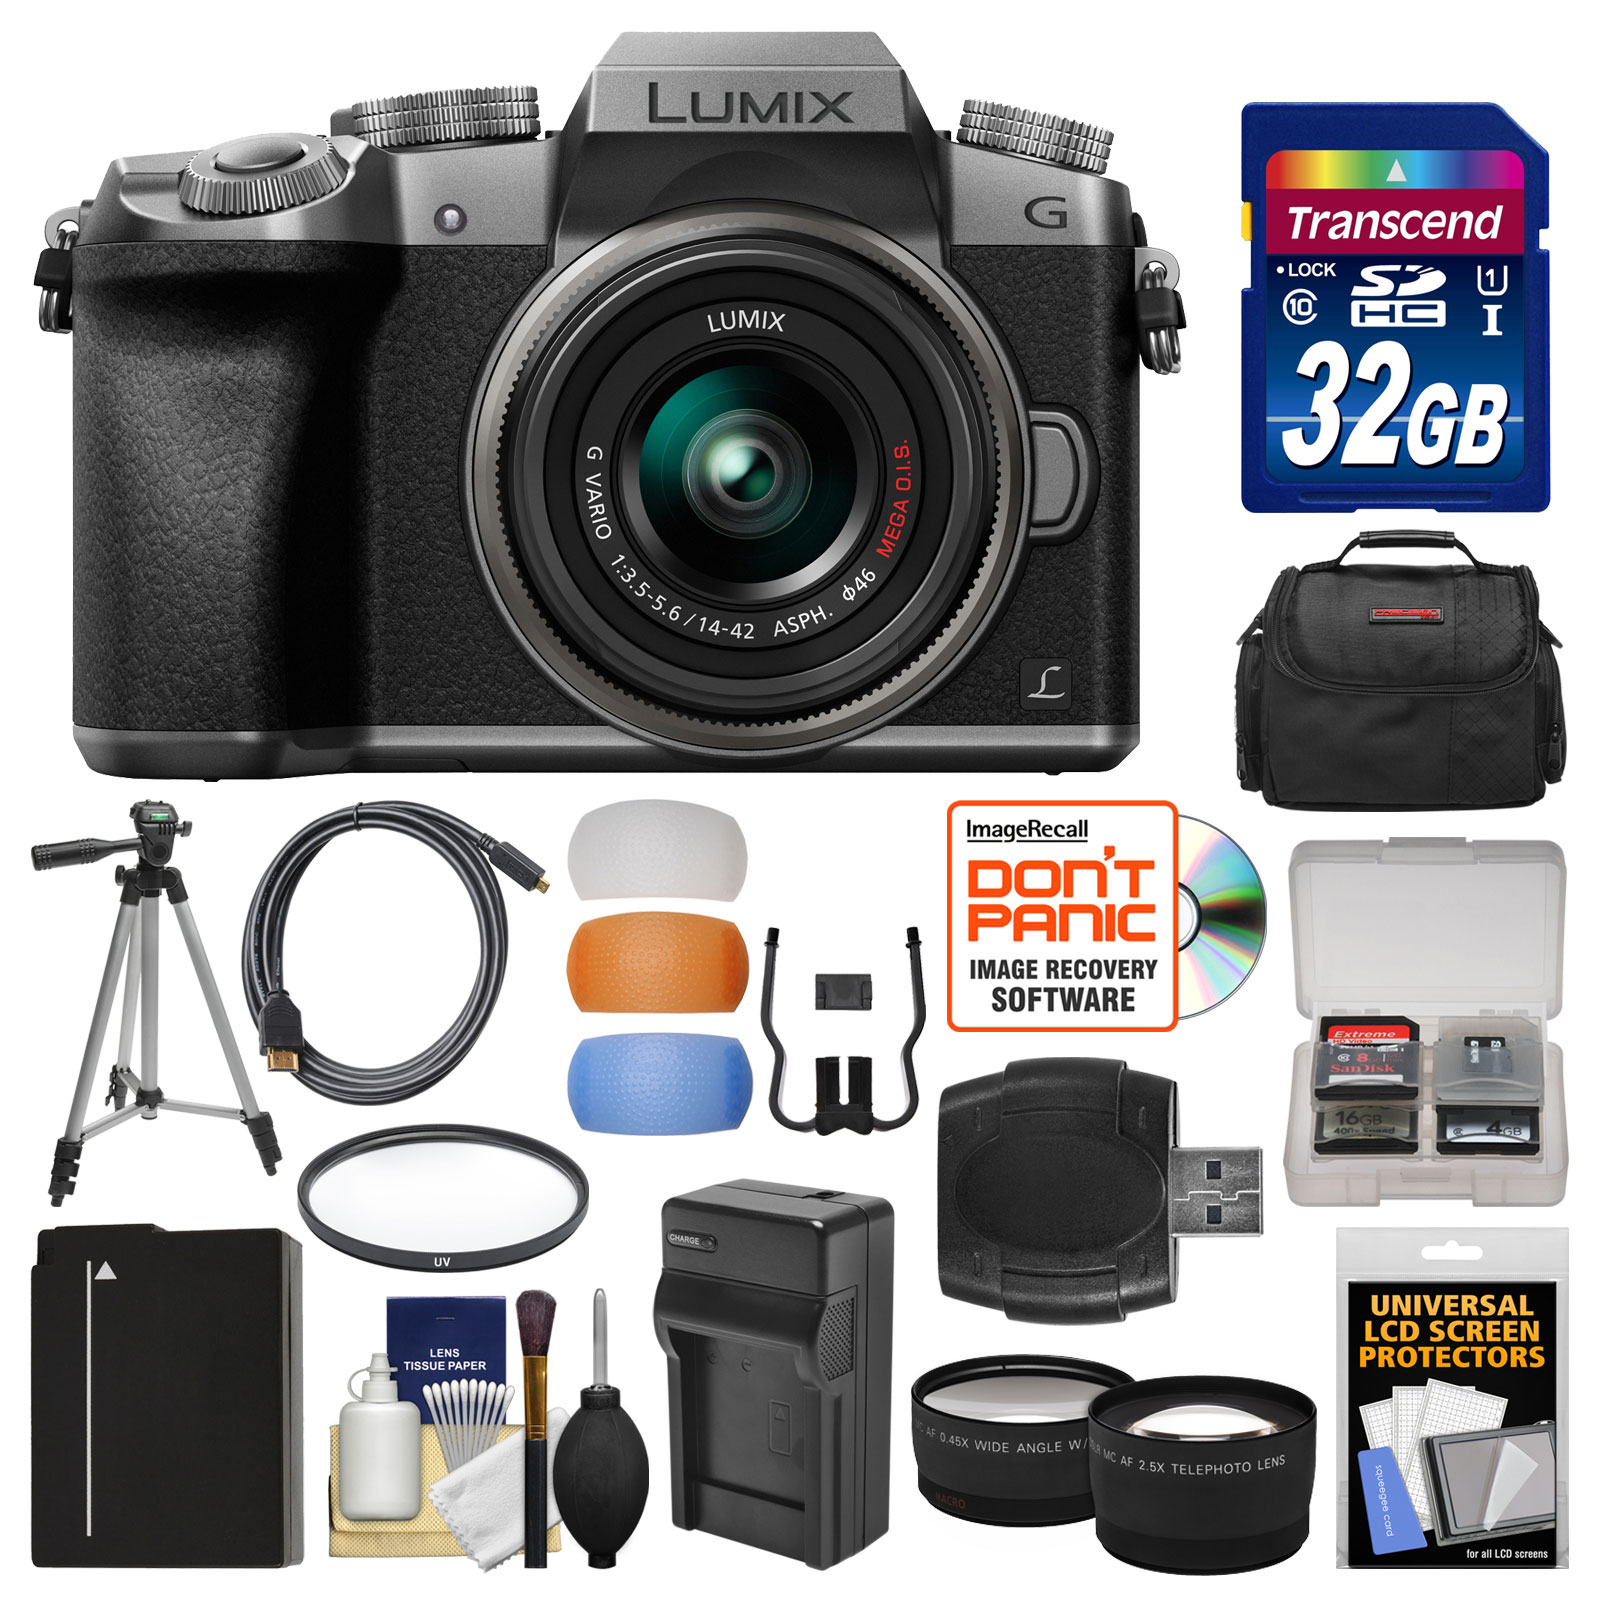 Panasonic Lumix DMC-G7 4K Wi-Fi Digital Camera & 14-42mm Lens (Silver) with 32GB Card + Case + Battery & Charger + Tripod + Tele/Wide Lenses Kit